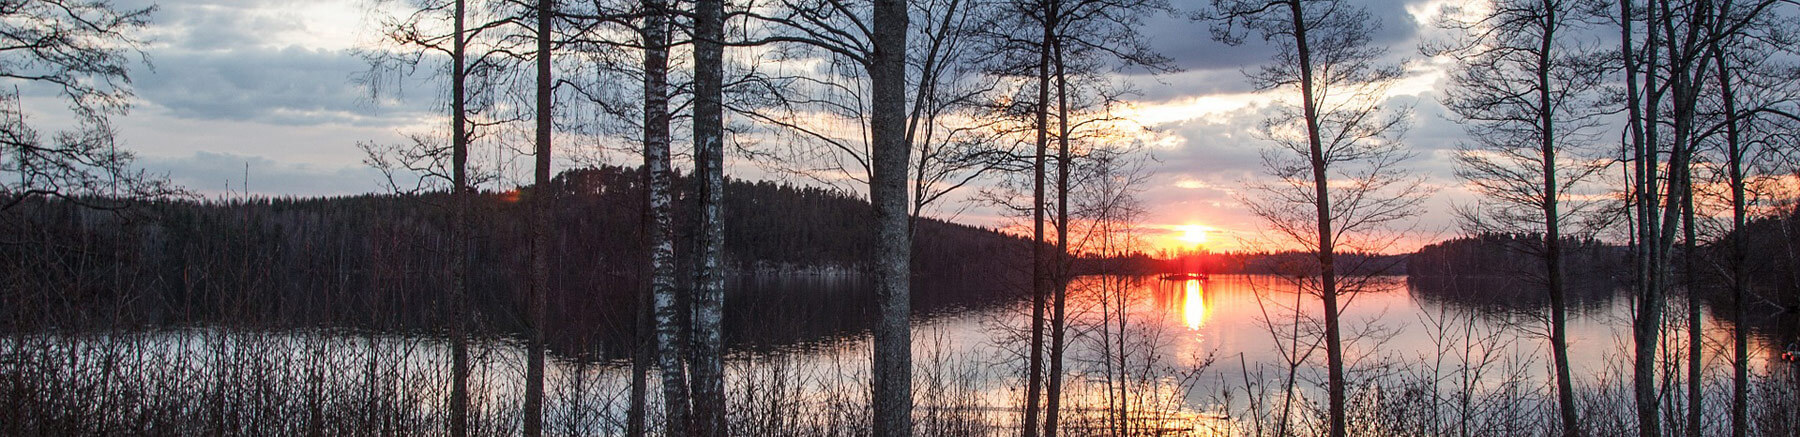 Lake and forest view in Finland at sunset